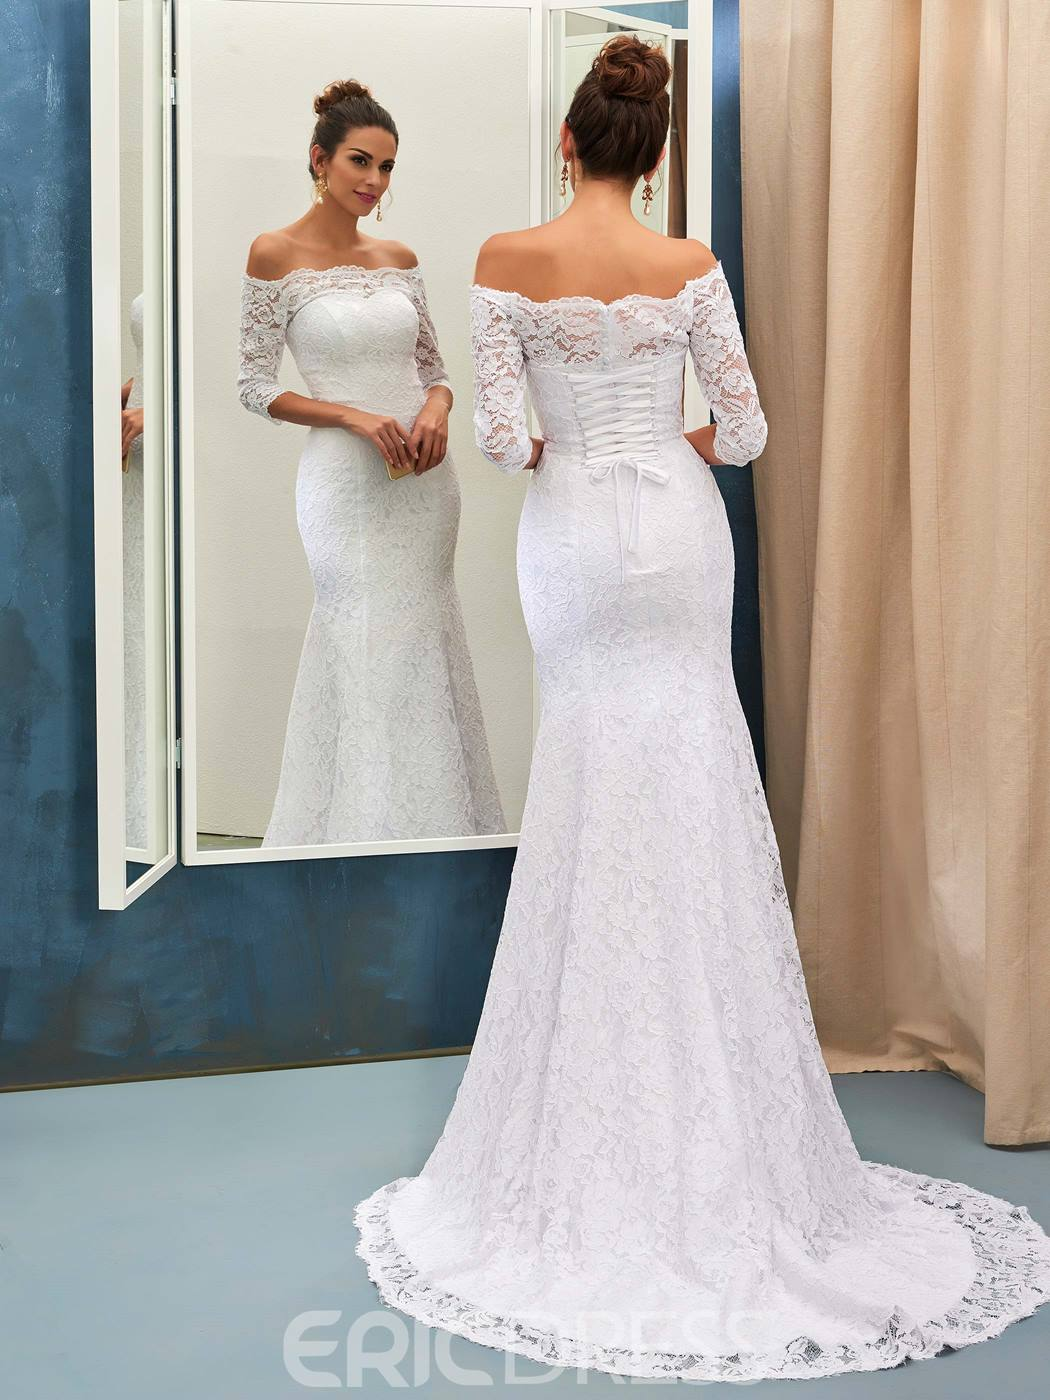 66521df900 Ericdress Lace Mermaid Off The Shoulder Wedding Dress With Sleeves